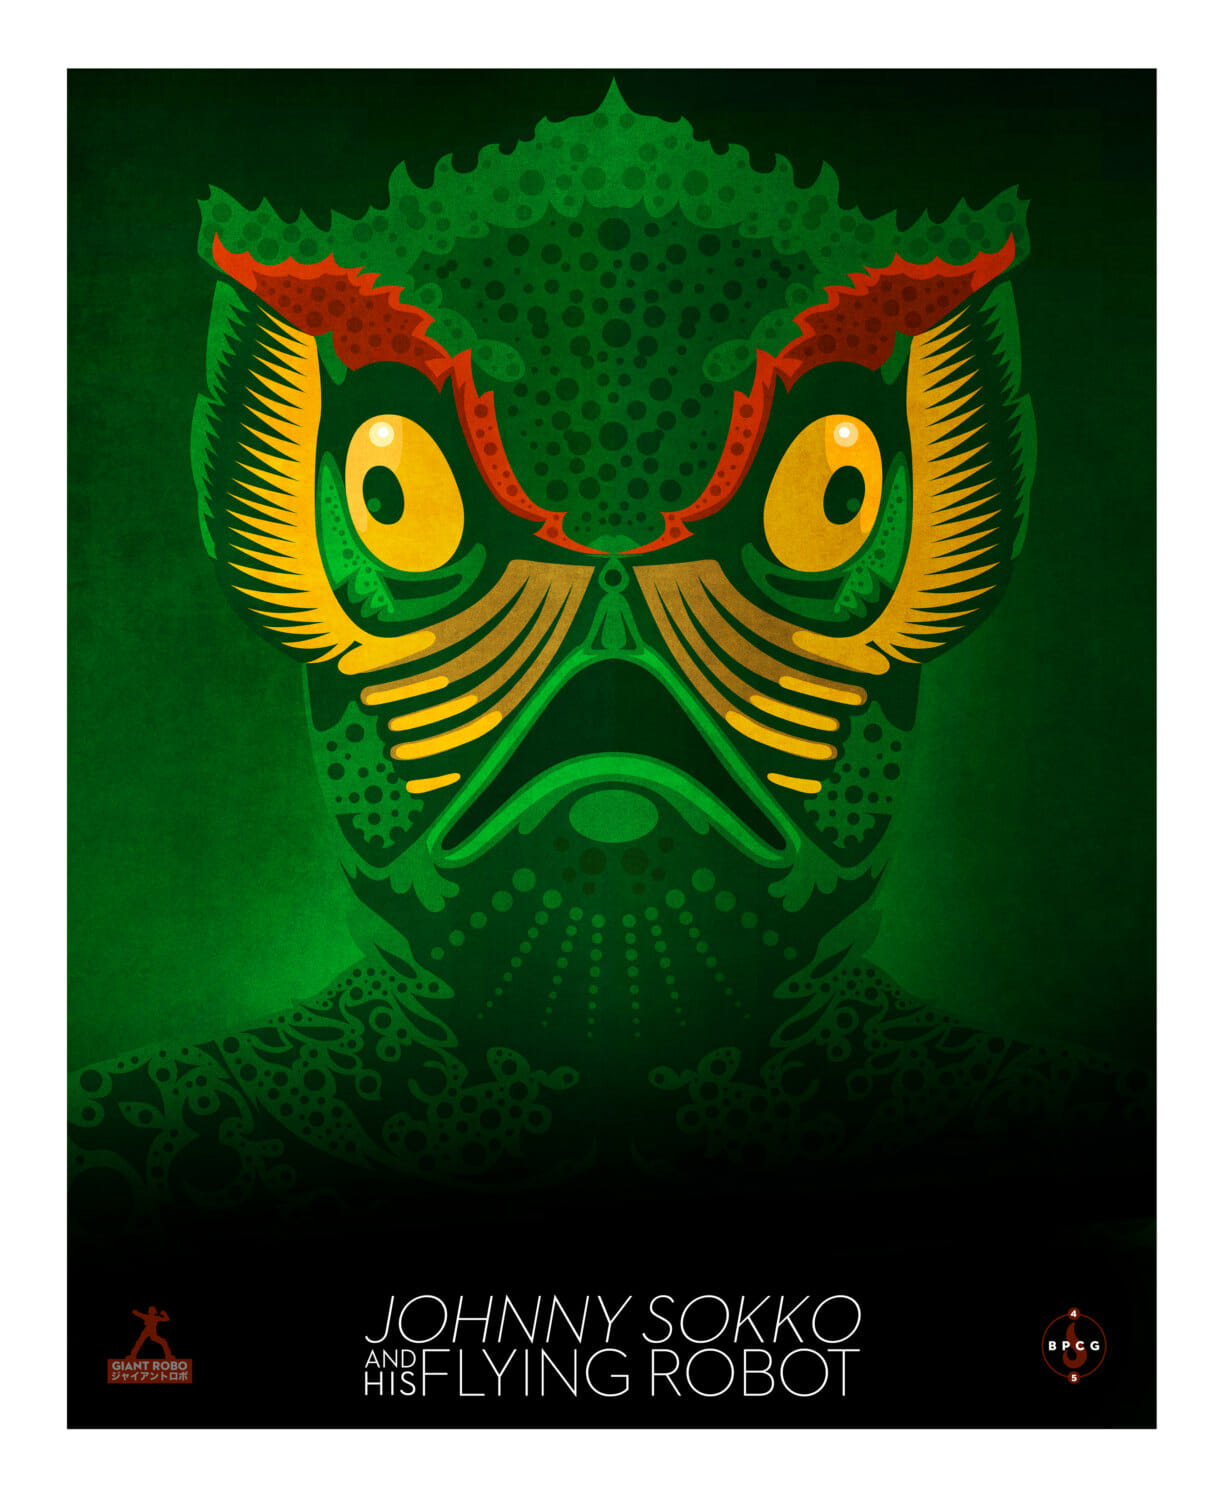 johnny-soklo-and-his-flying-robot-4